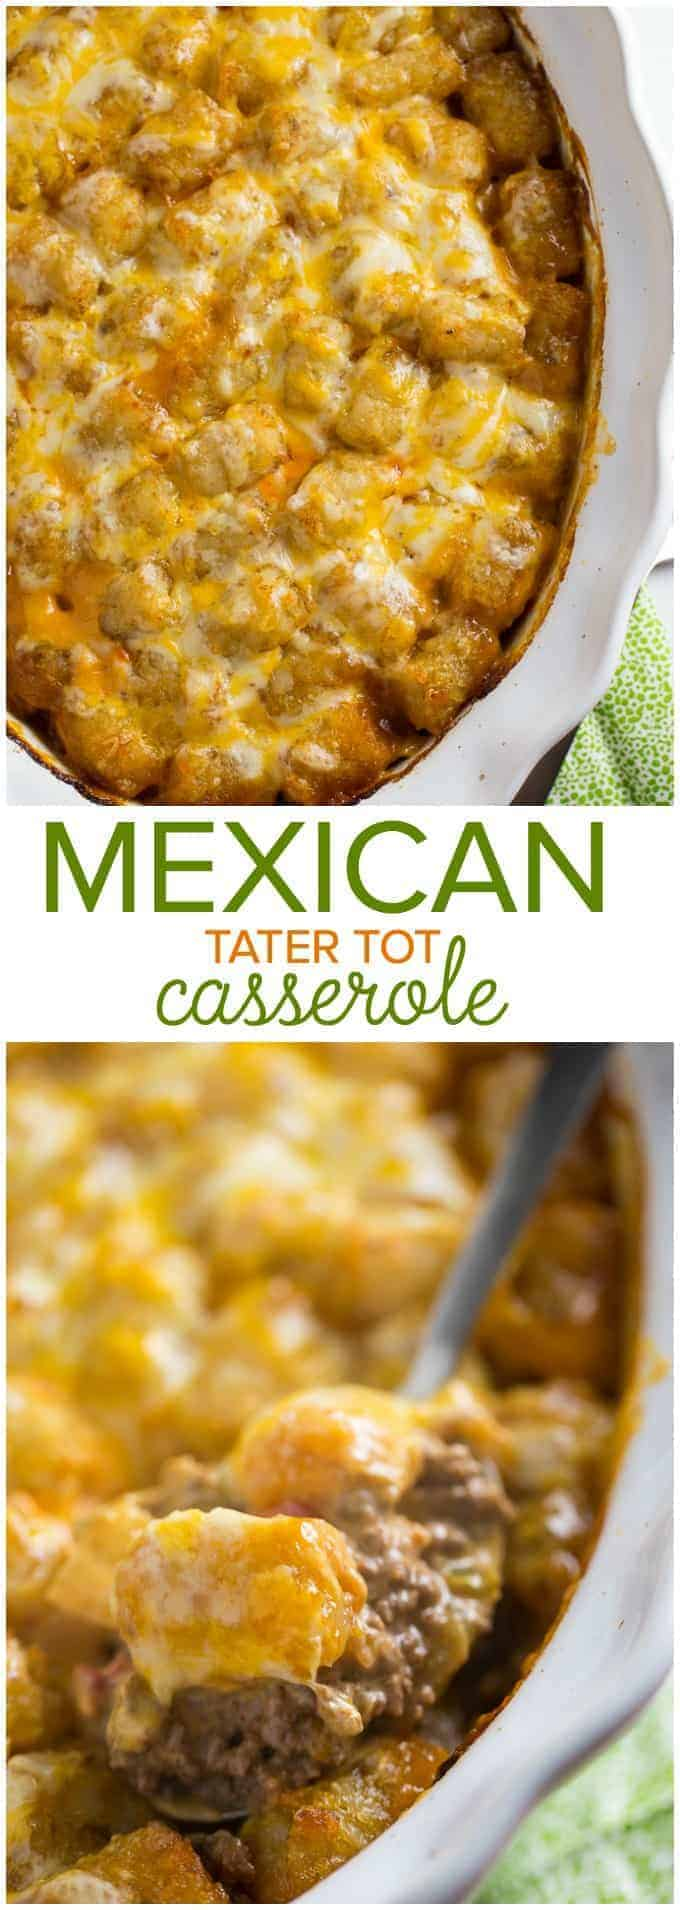 Mexican Tater Tot Casserole - This easy casserole recipe was a hit with my family! It was spicy, hearty and tasty. Comfort food for the win.